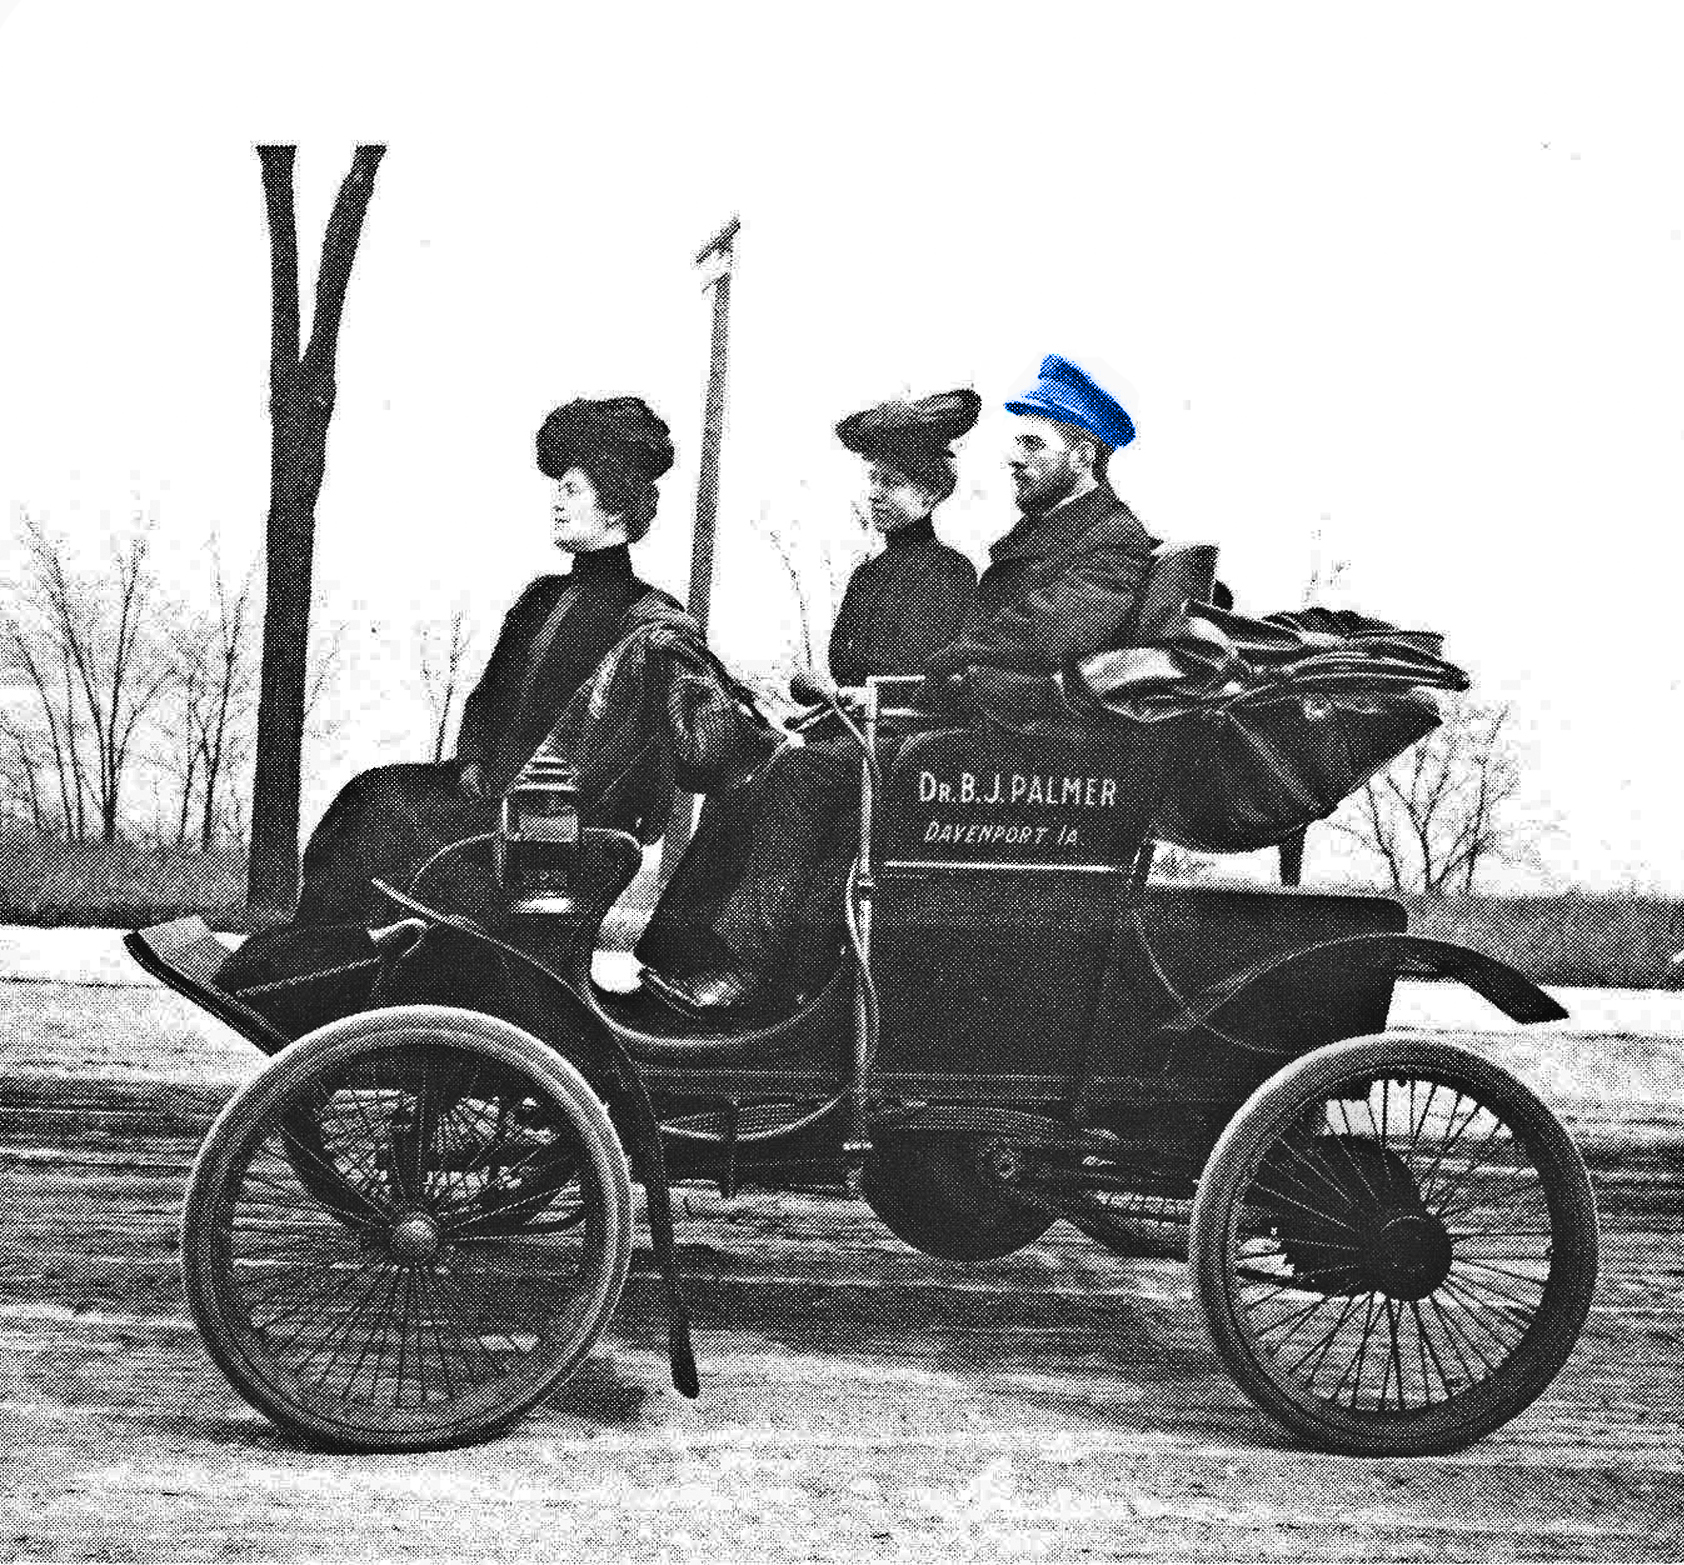 BJ Palmer in his new automobile.